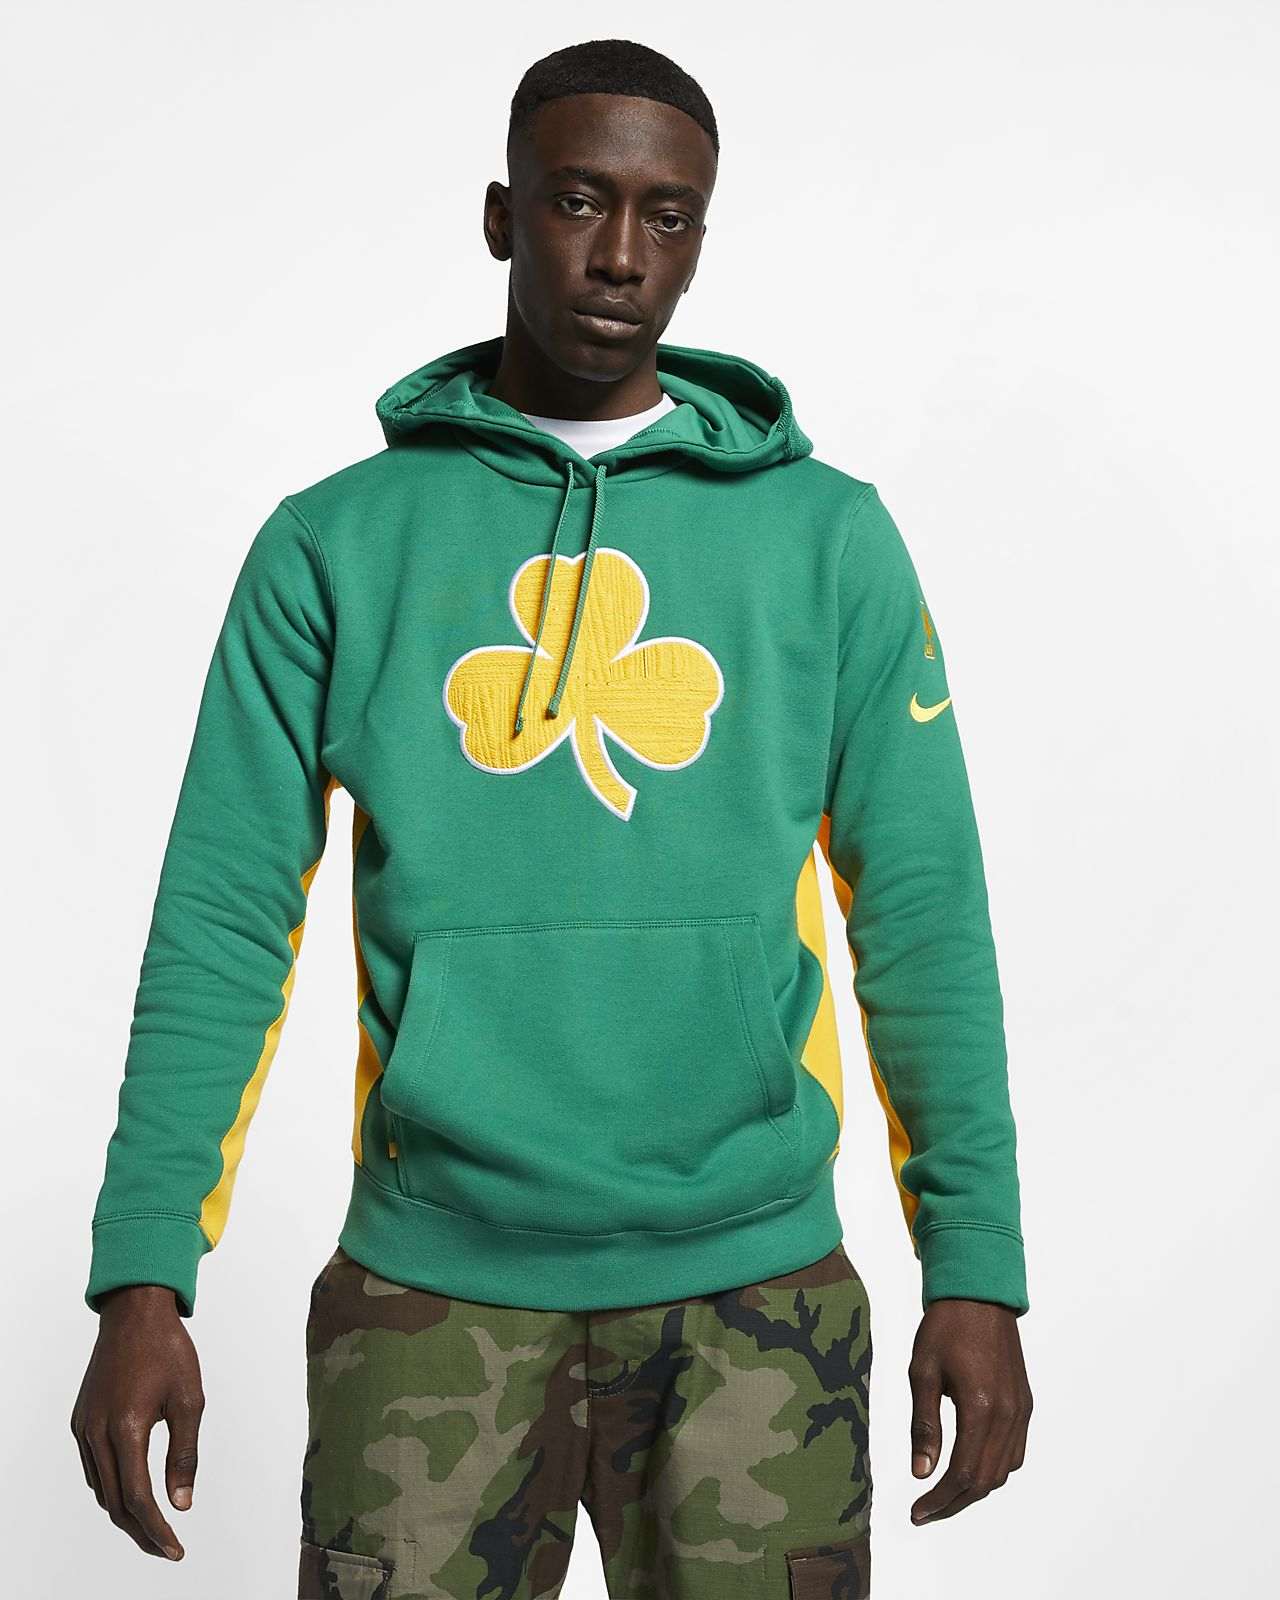 Boston Celtics Nike NBA-Hoodie für Herren